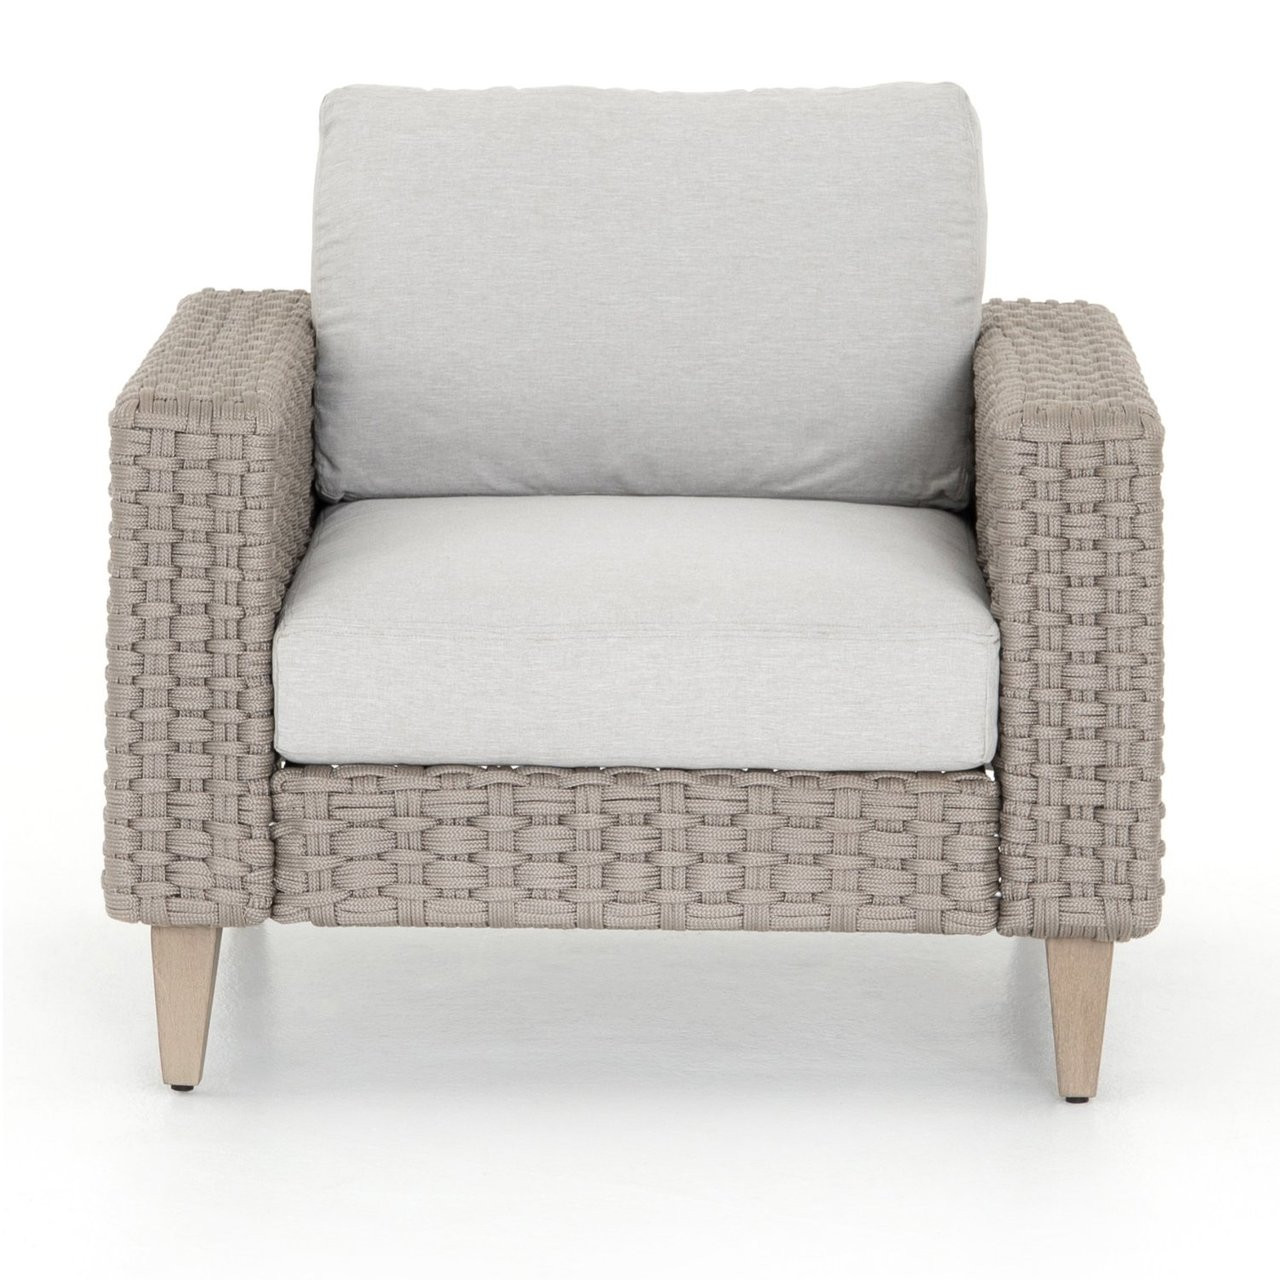 Outdoor Lounge Remi Grey Woven Rope Outdoor Lounge Chair